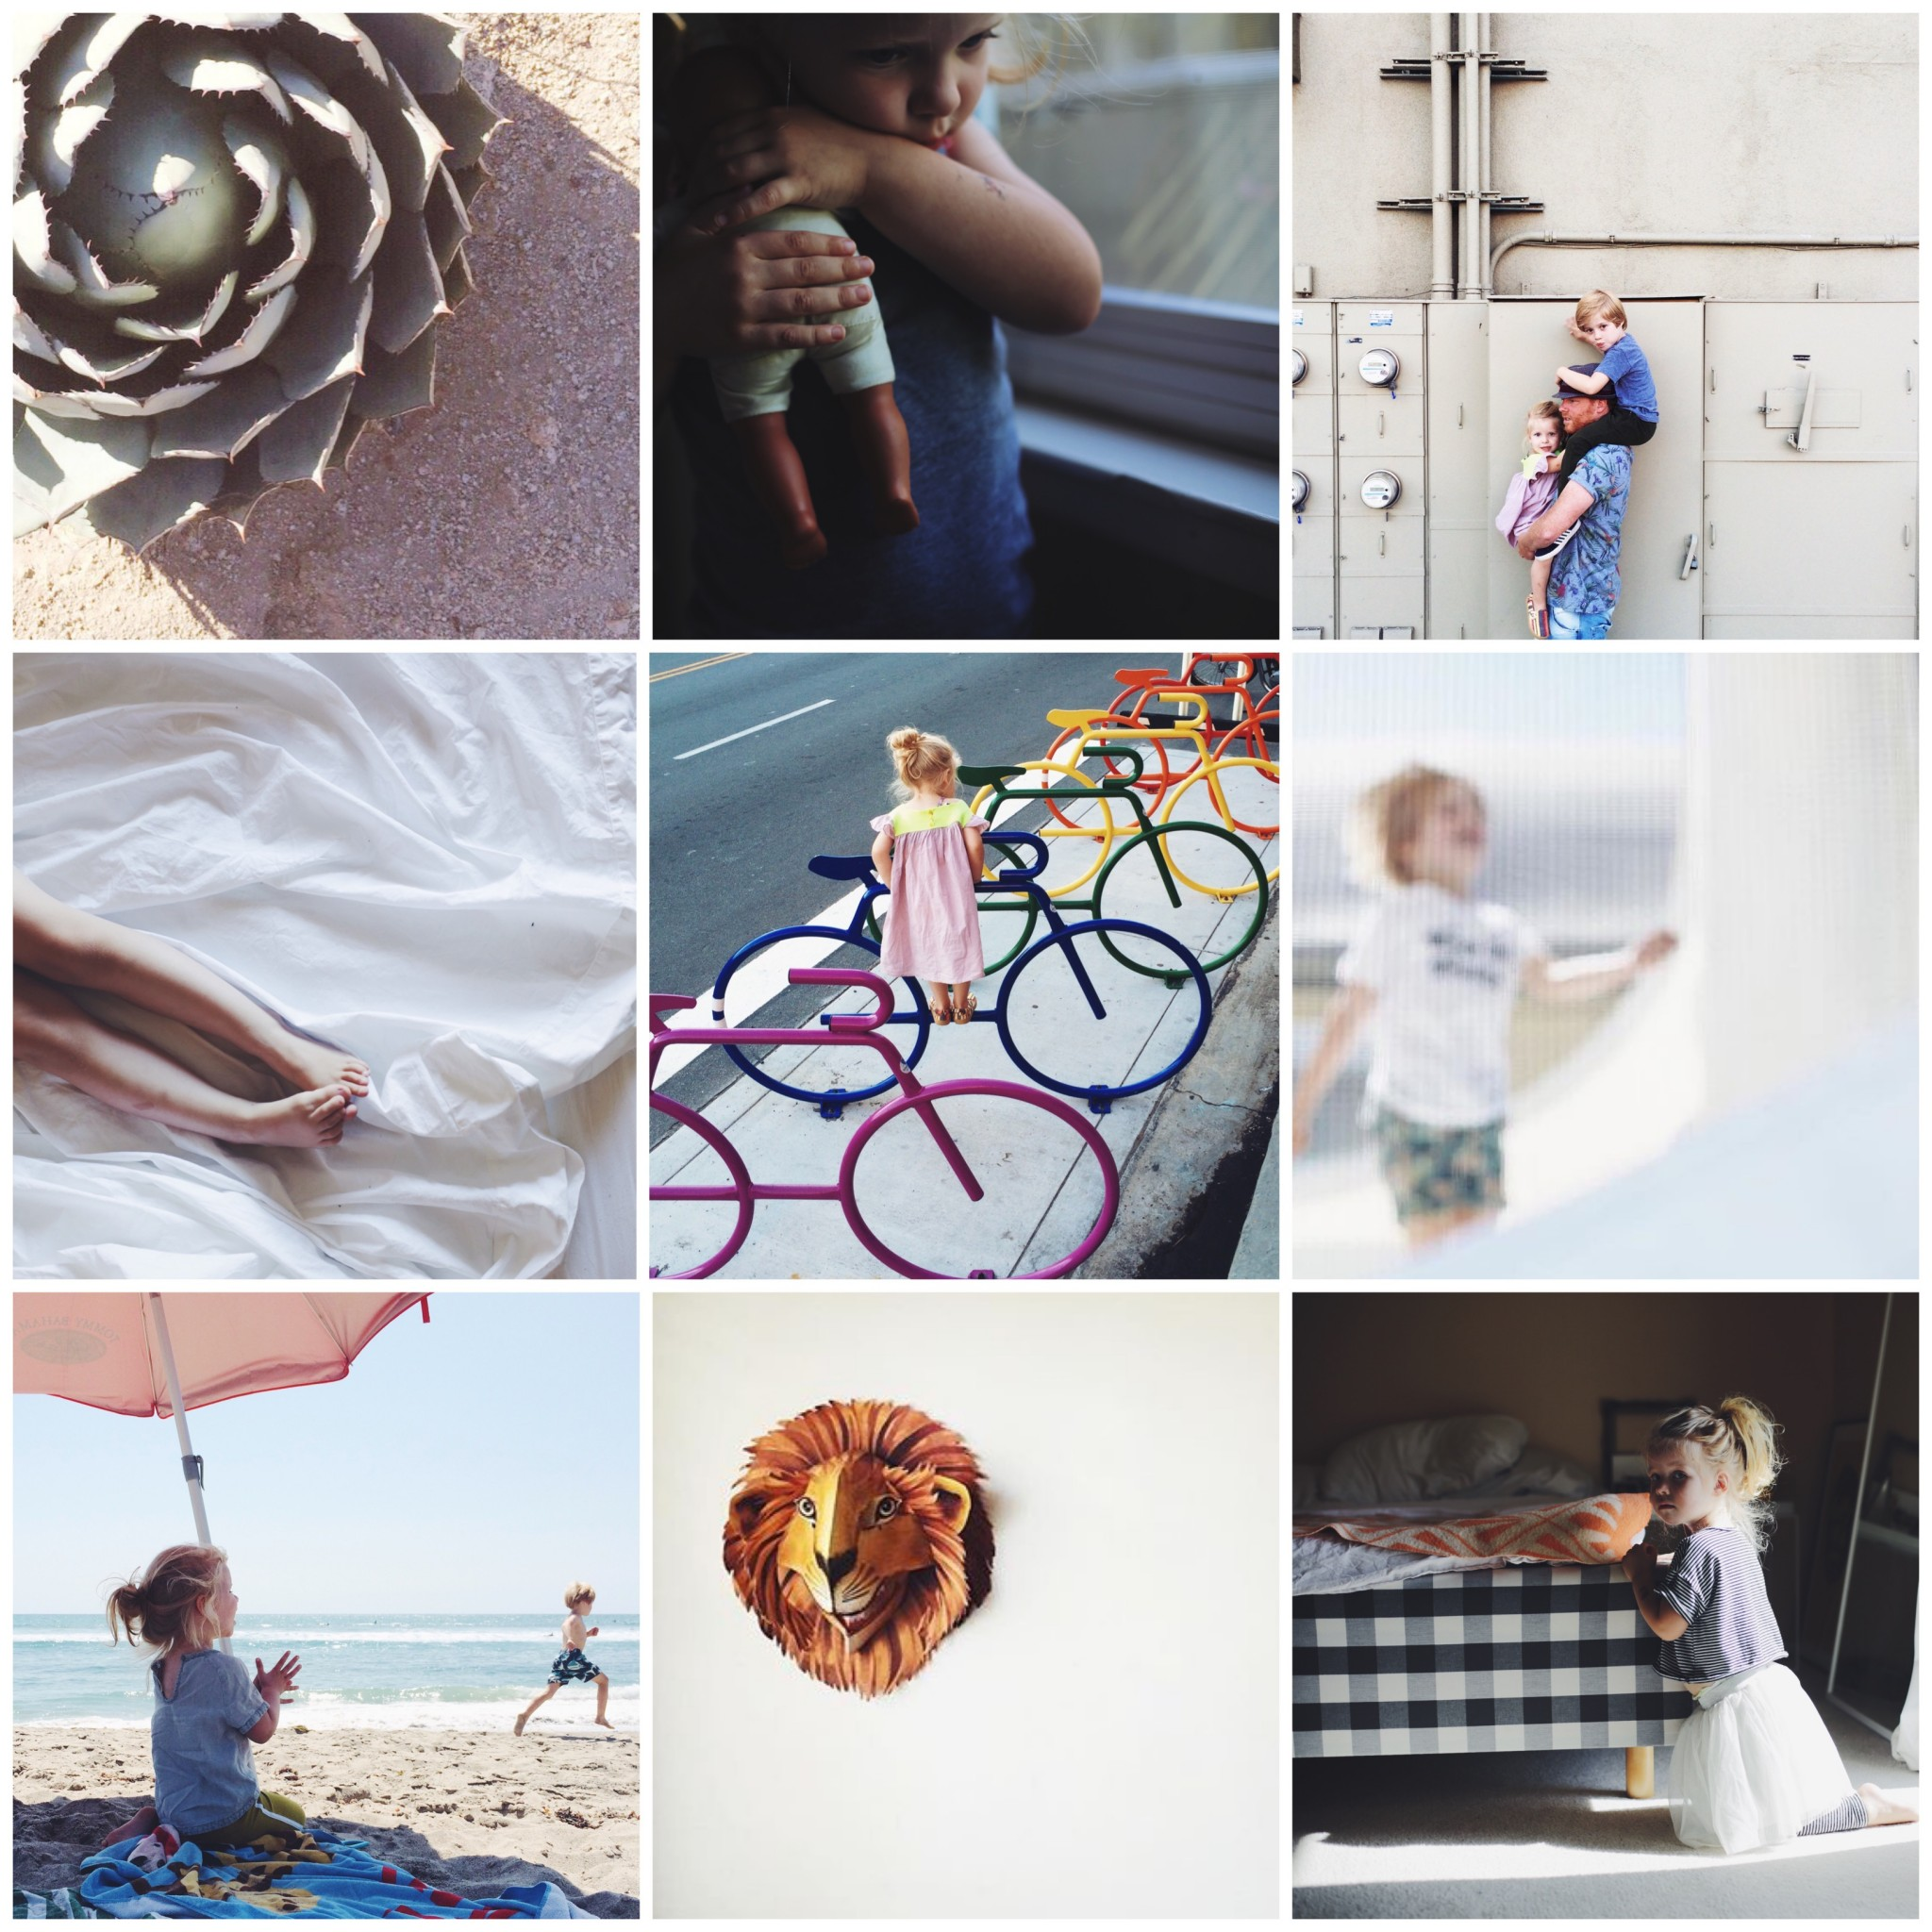 September on Instagram @madebylon